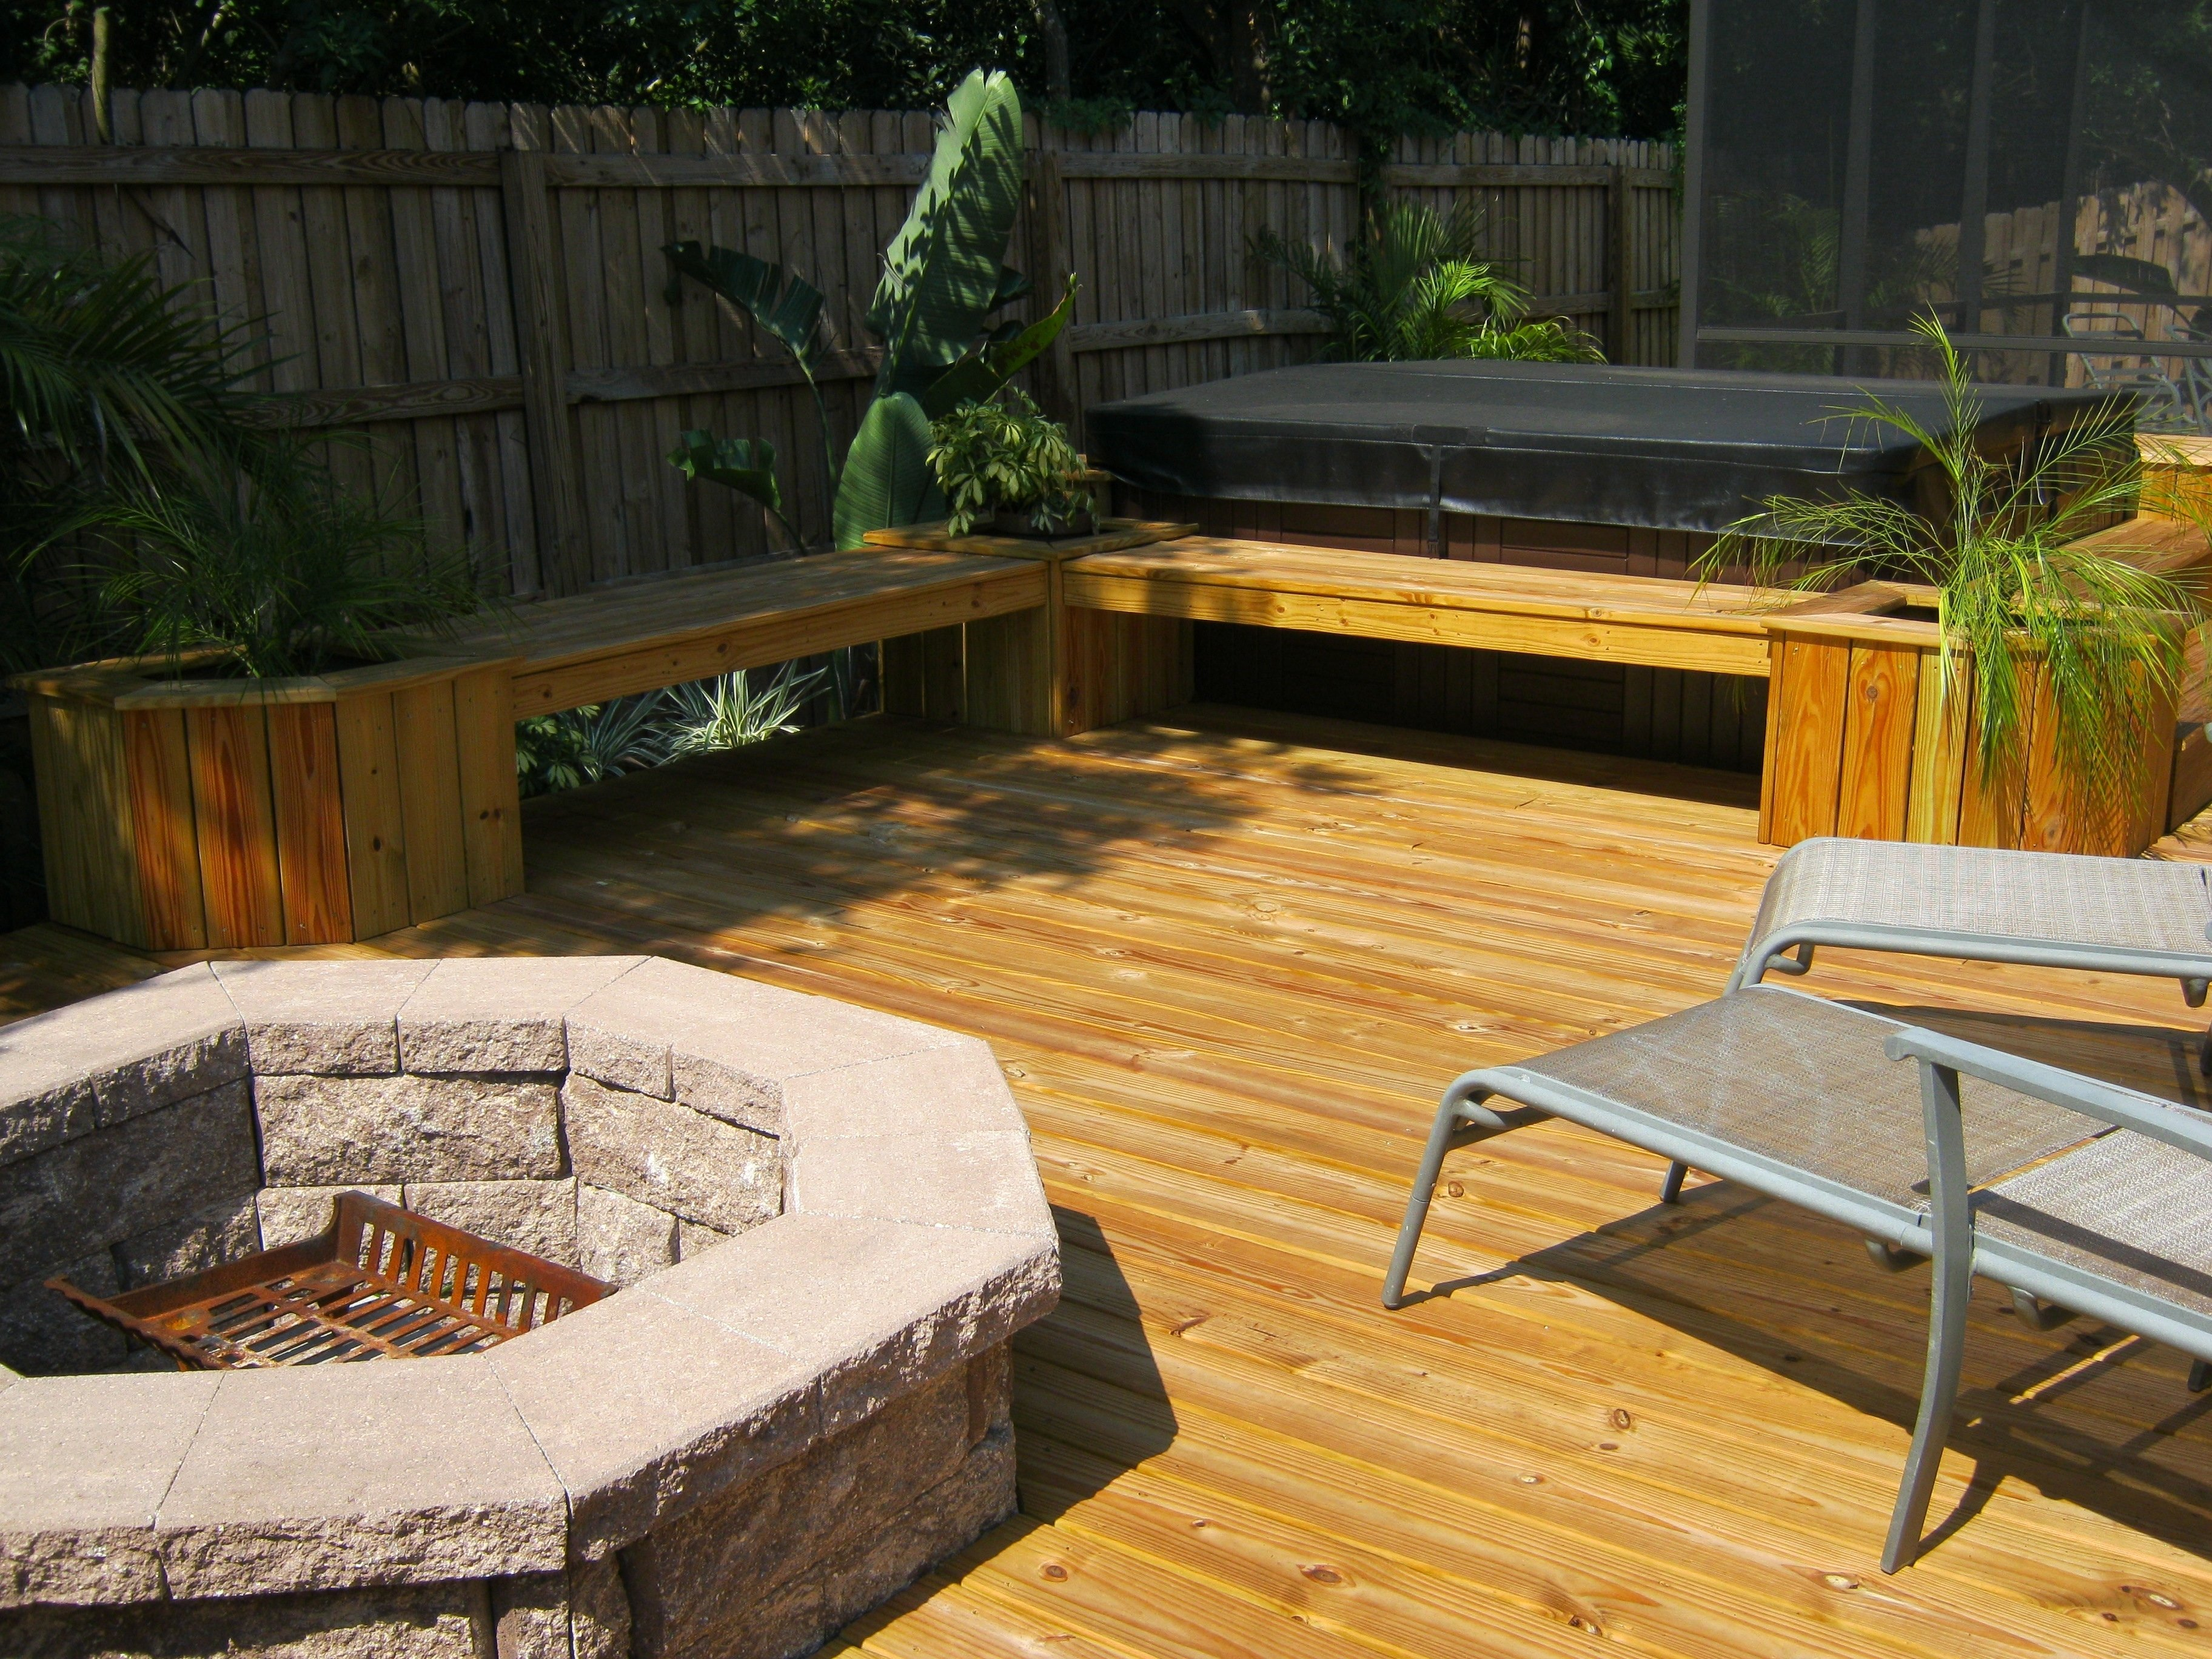 10 Stylish Deck Ideas With Fire Pit deck with fire pit fire pits exterior concepts blog for the within 2021